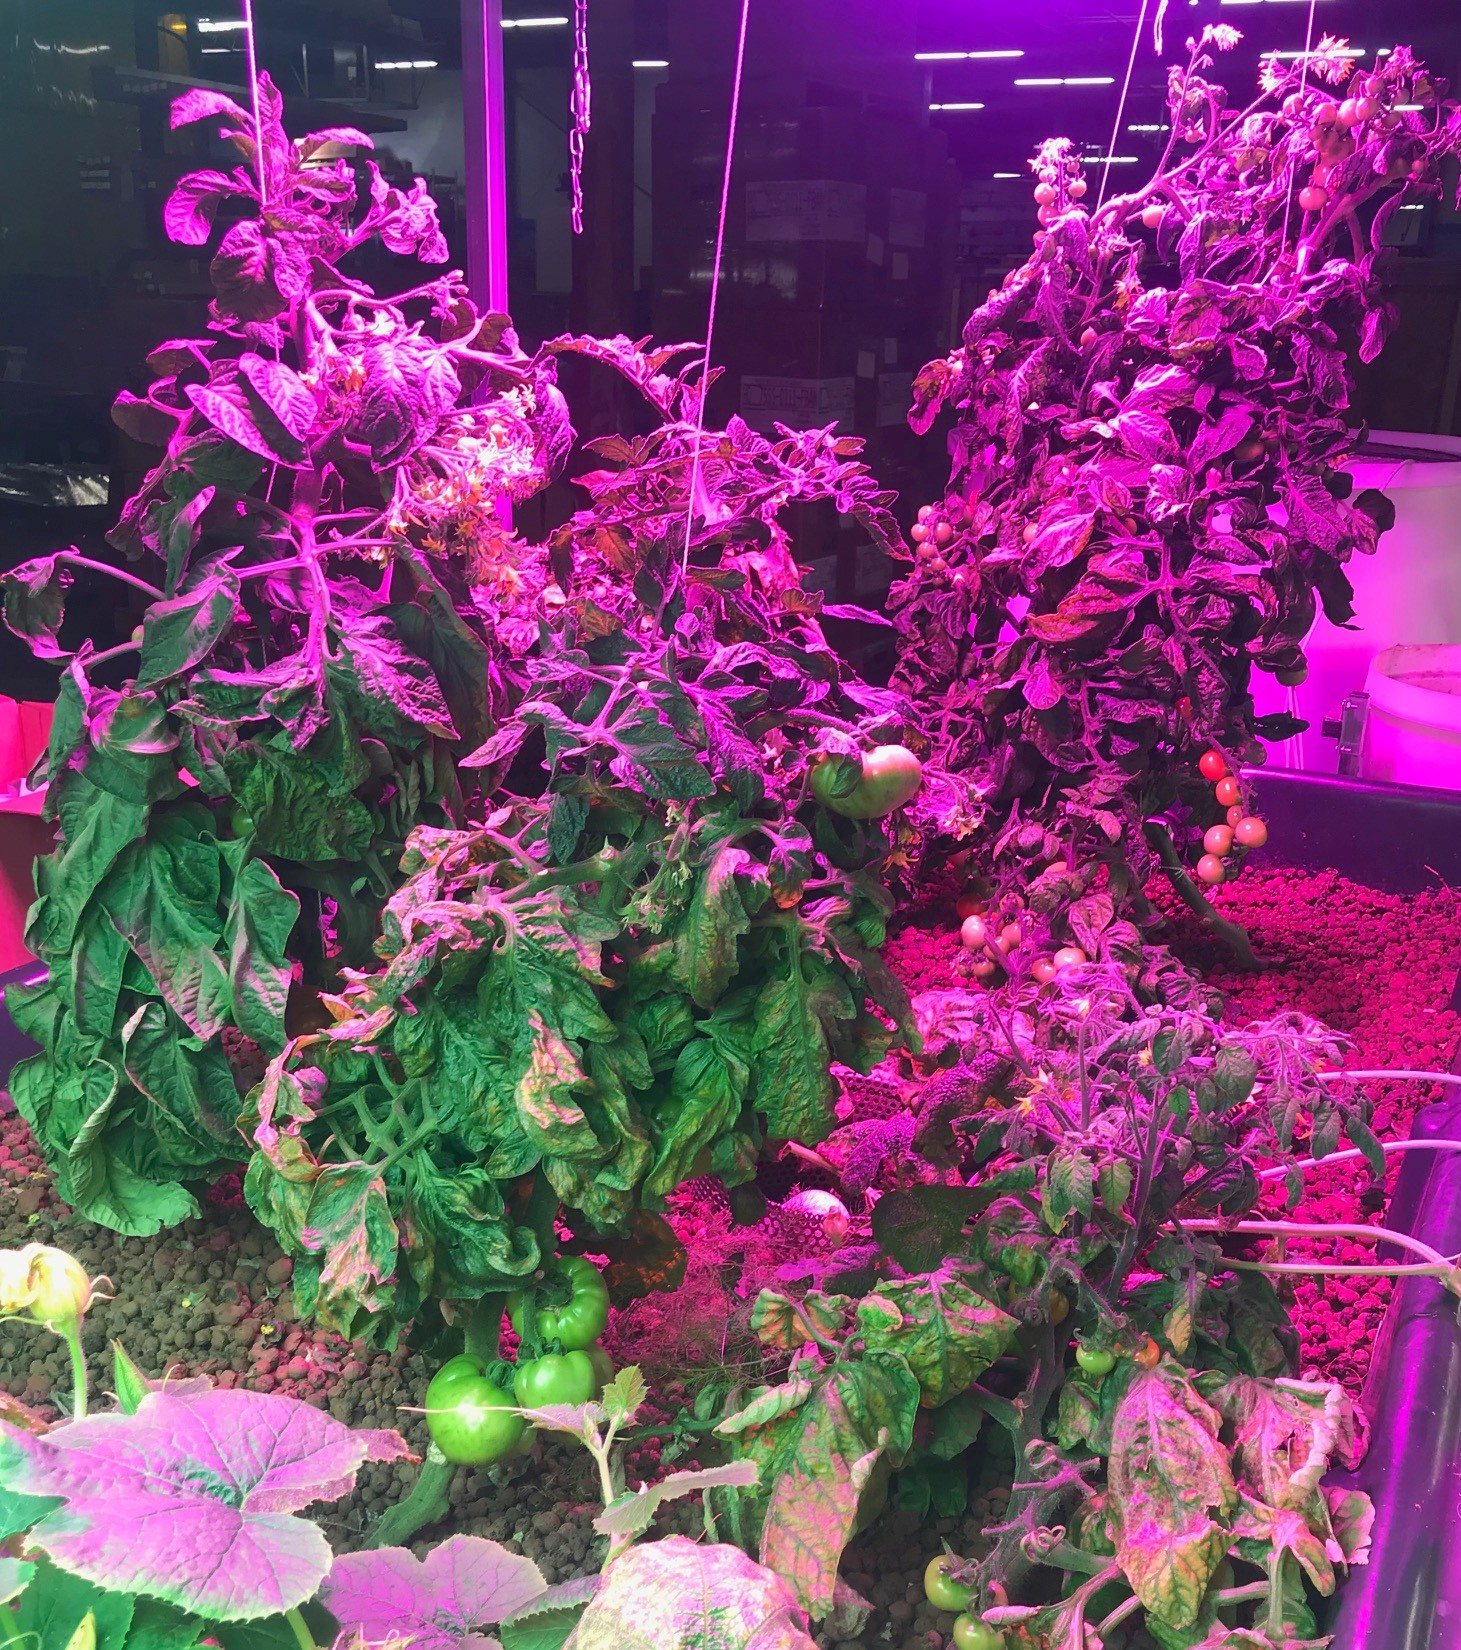 image showing off the full height of the tomatoes which are all fruiting very well in the media bed.